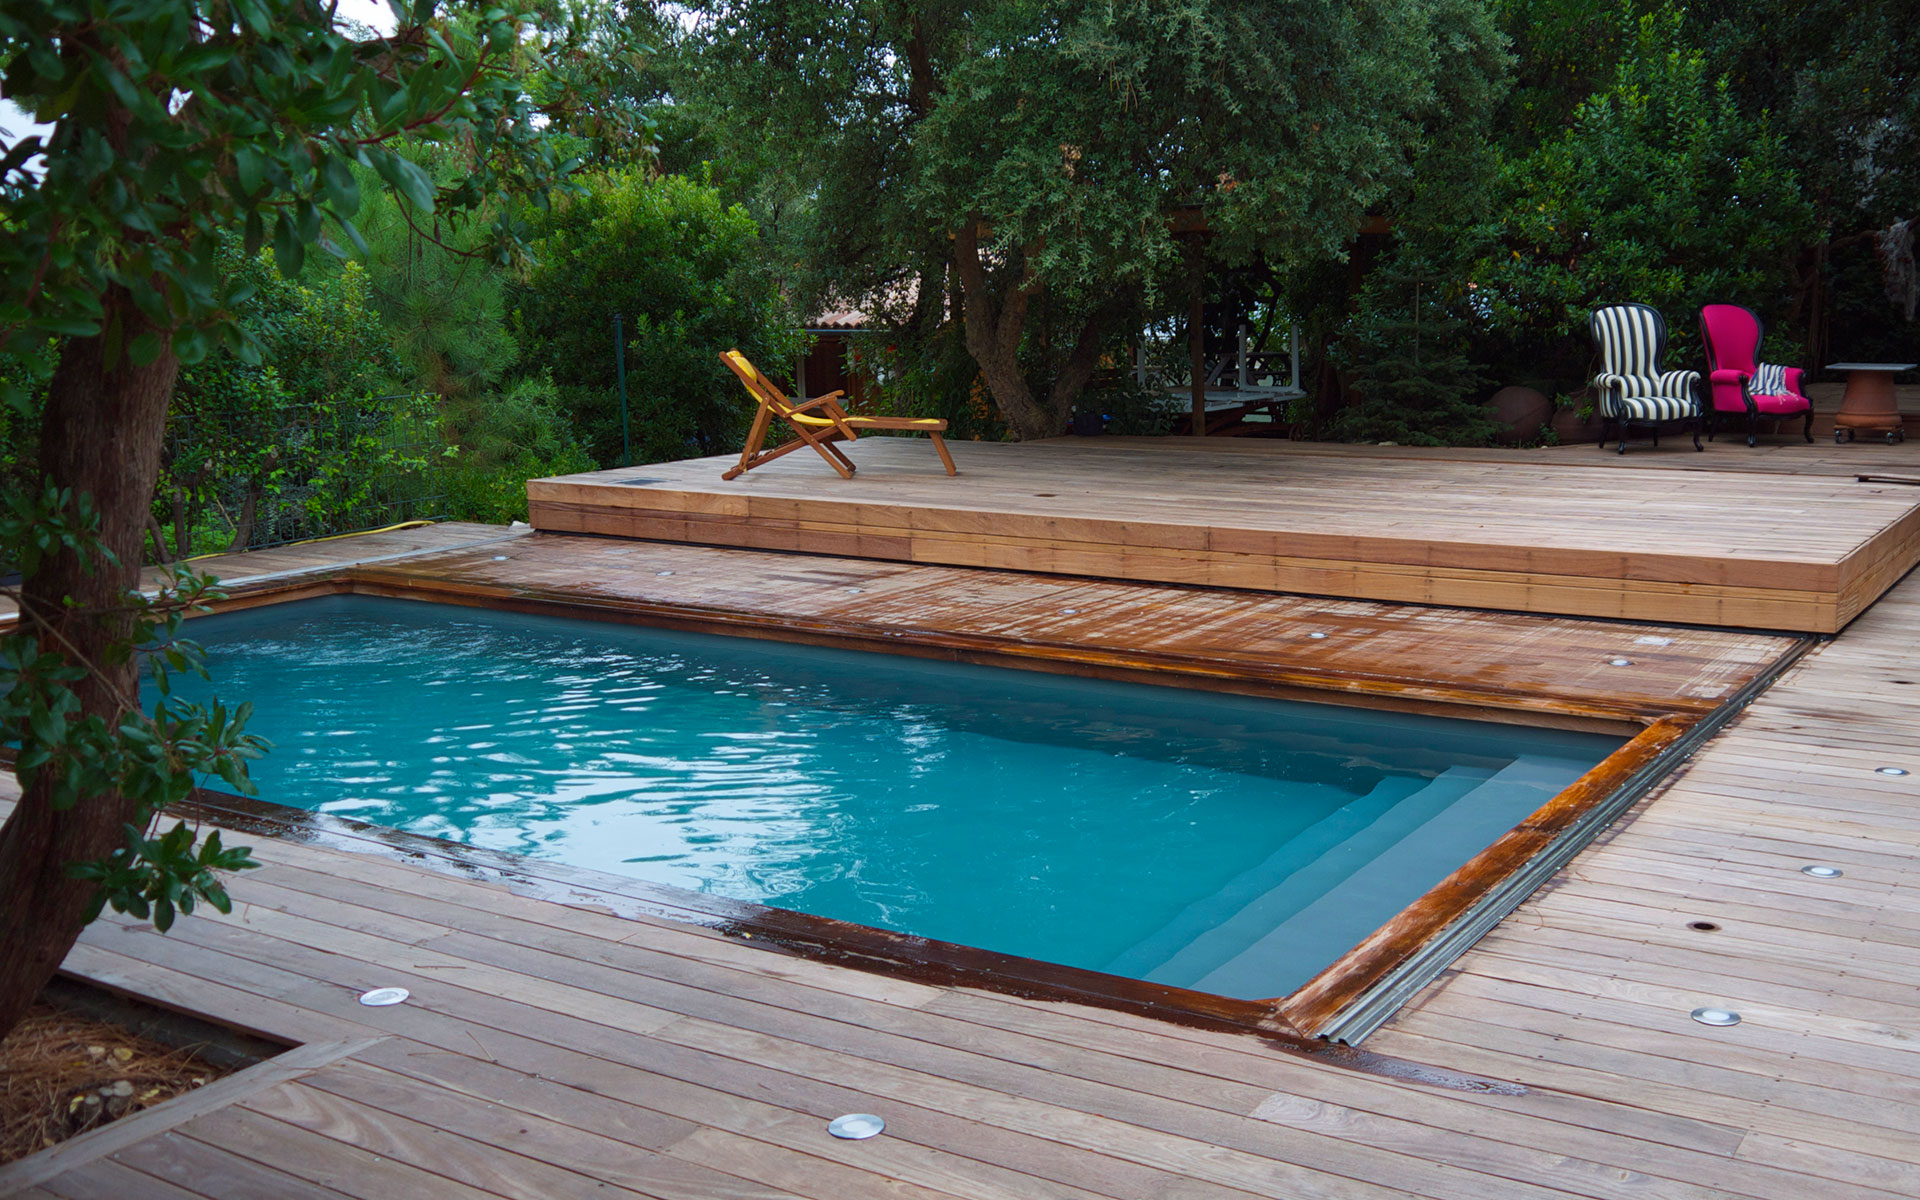 Terrasse mobile pour piscine hidden pool fond mobile for Piscine en bois de qualite